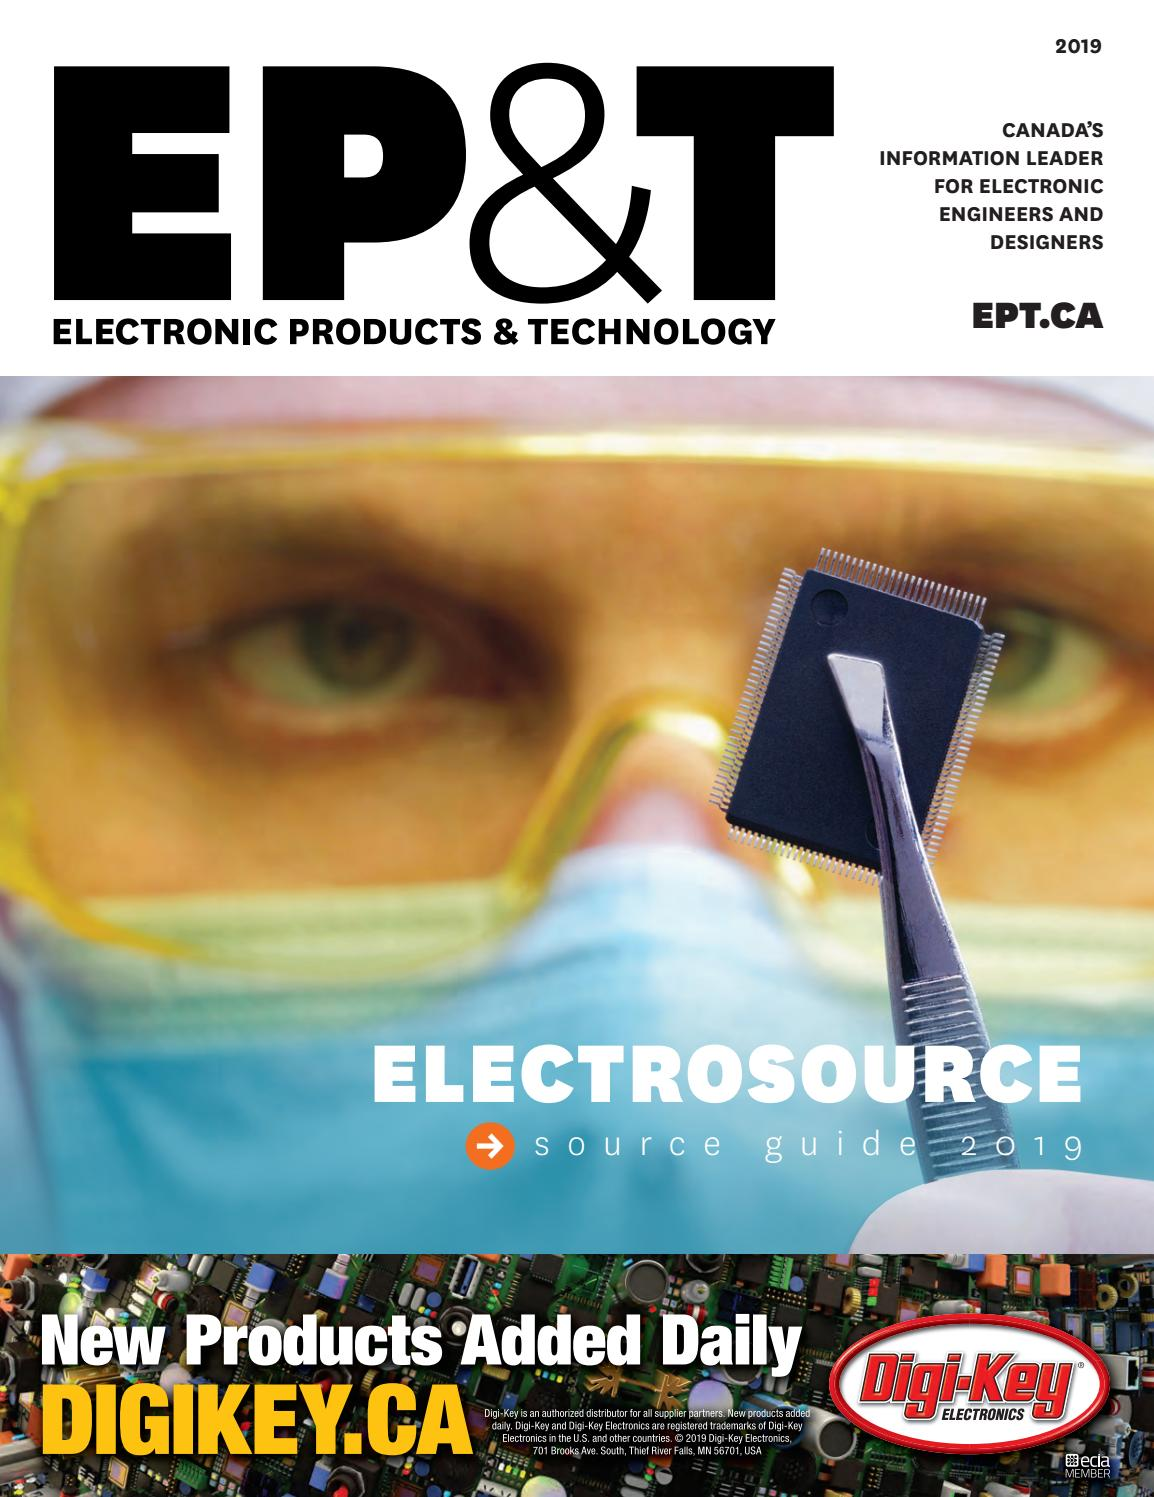 hight resolution of electronic products technology electrosource directory 2019 by annex business media issuu